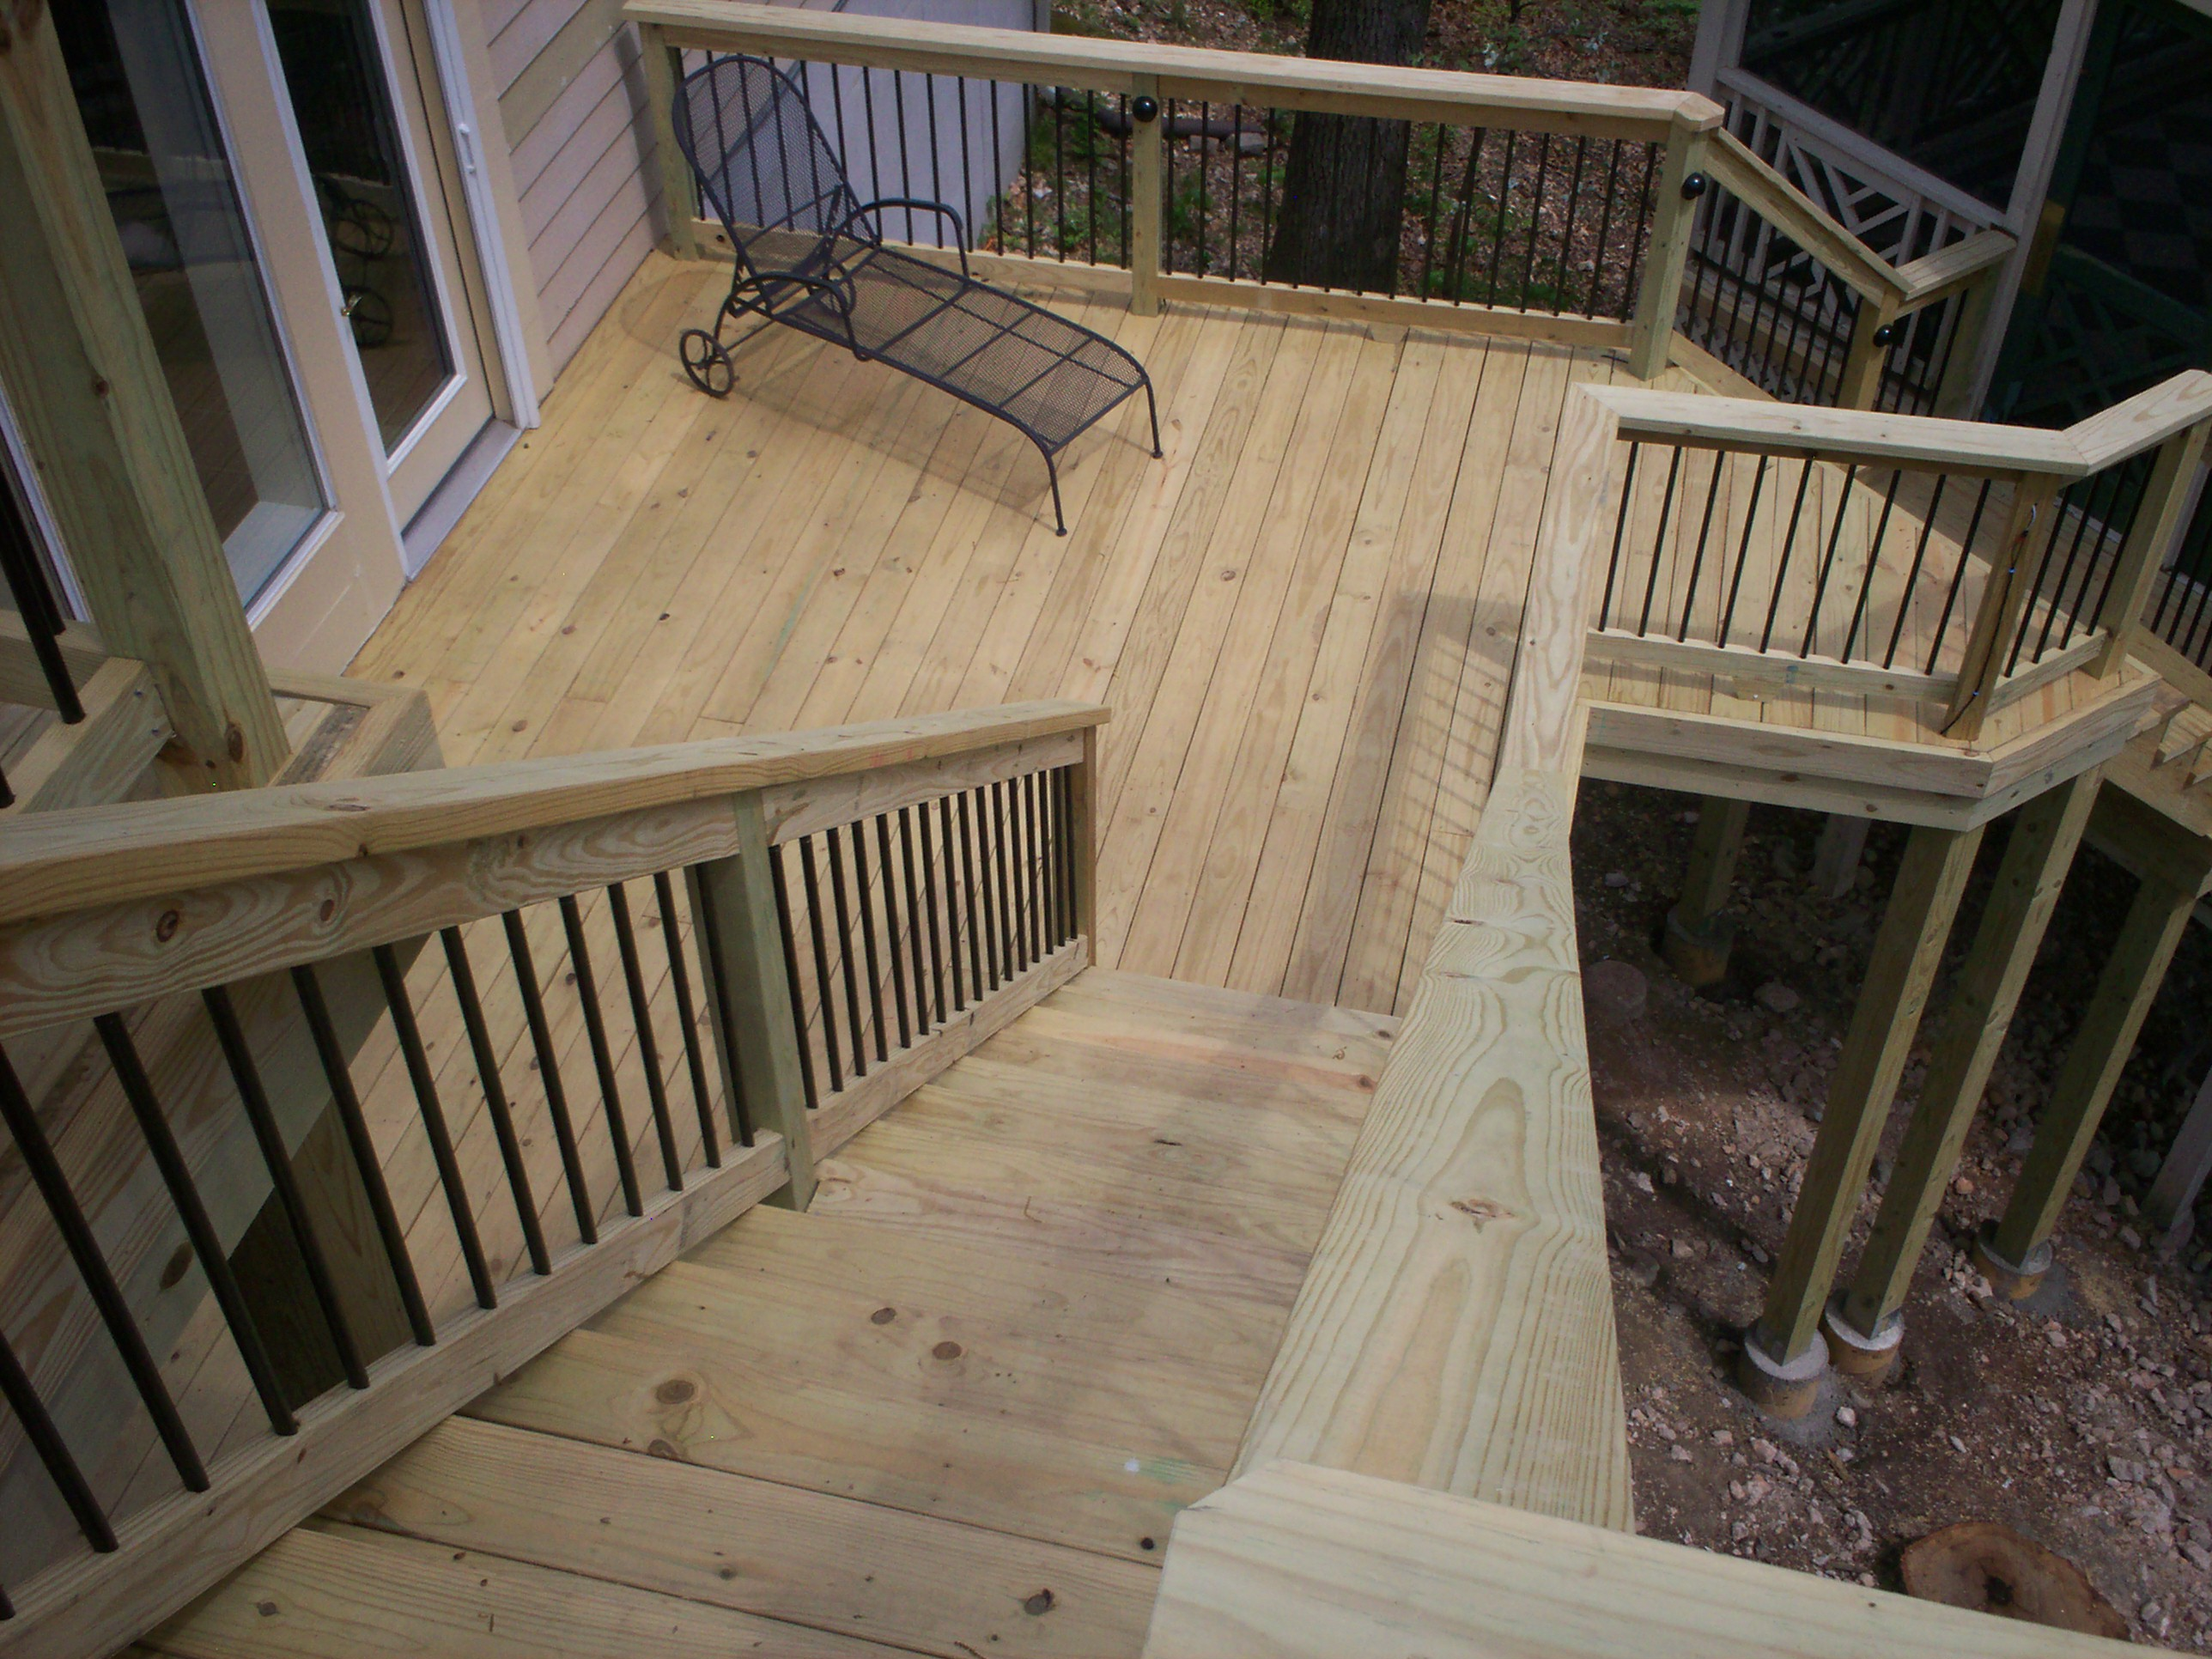 Deck Design In St. Louis: Gallery Of Options » Two Story Deck In St. Albans  In St. Louis, Mo